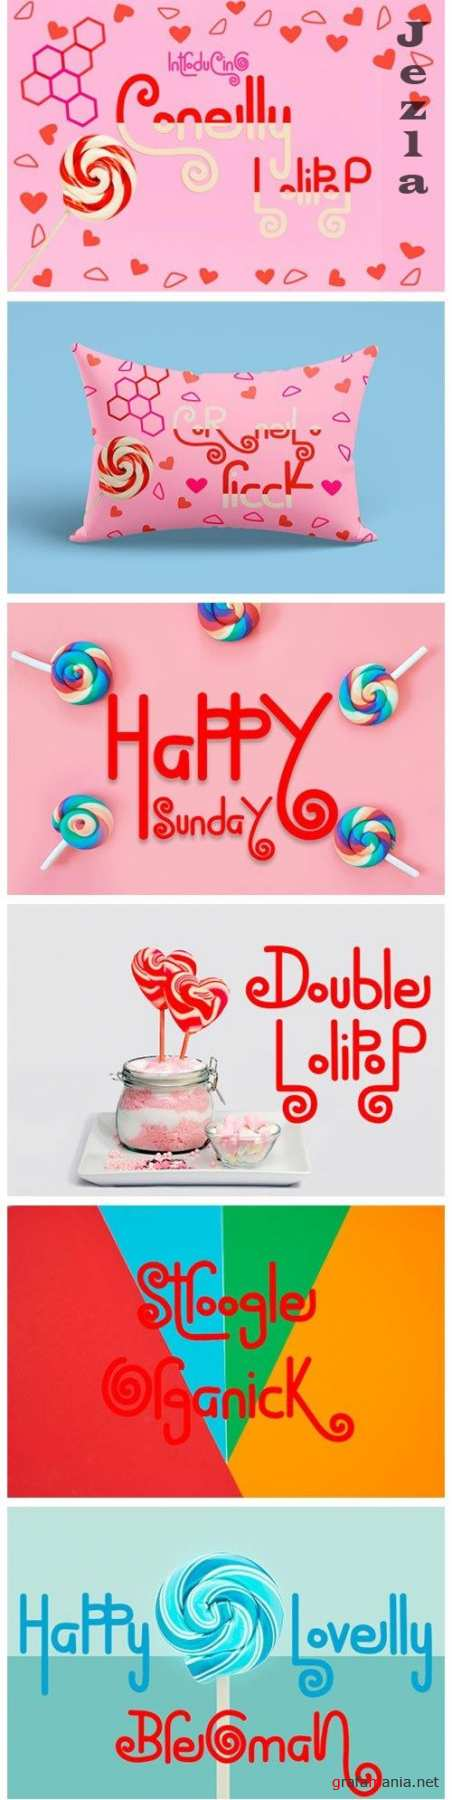 Conelly LolipoP Font